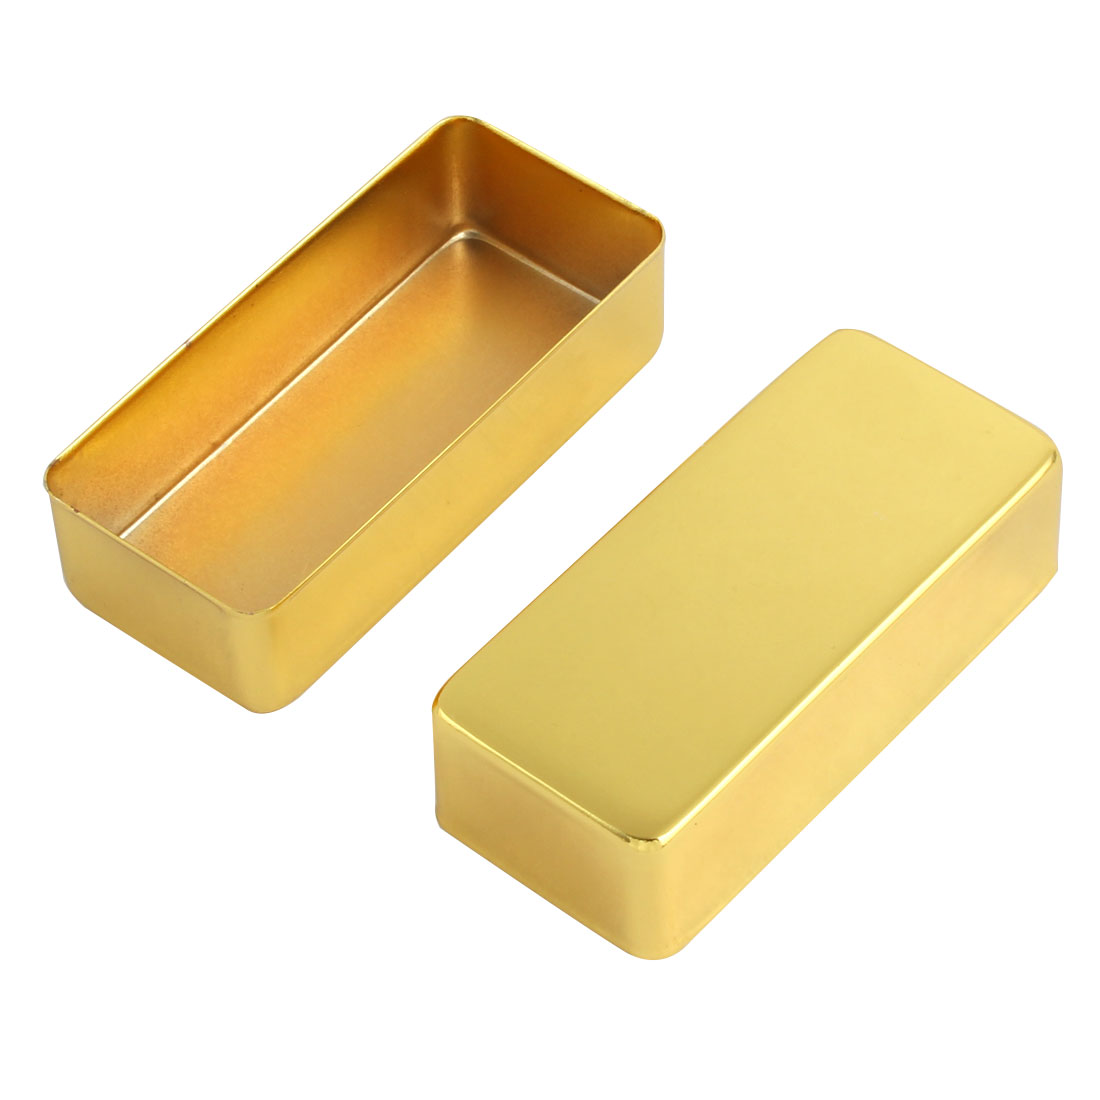 Acoustic No-Hole Humbucker Guitar Pickup Cover Gold Tone 2pcs